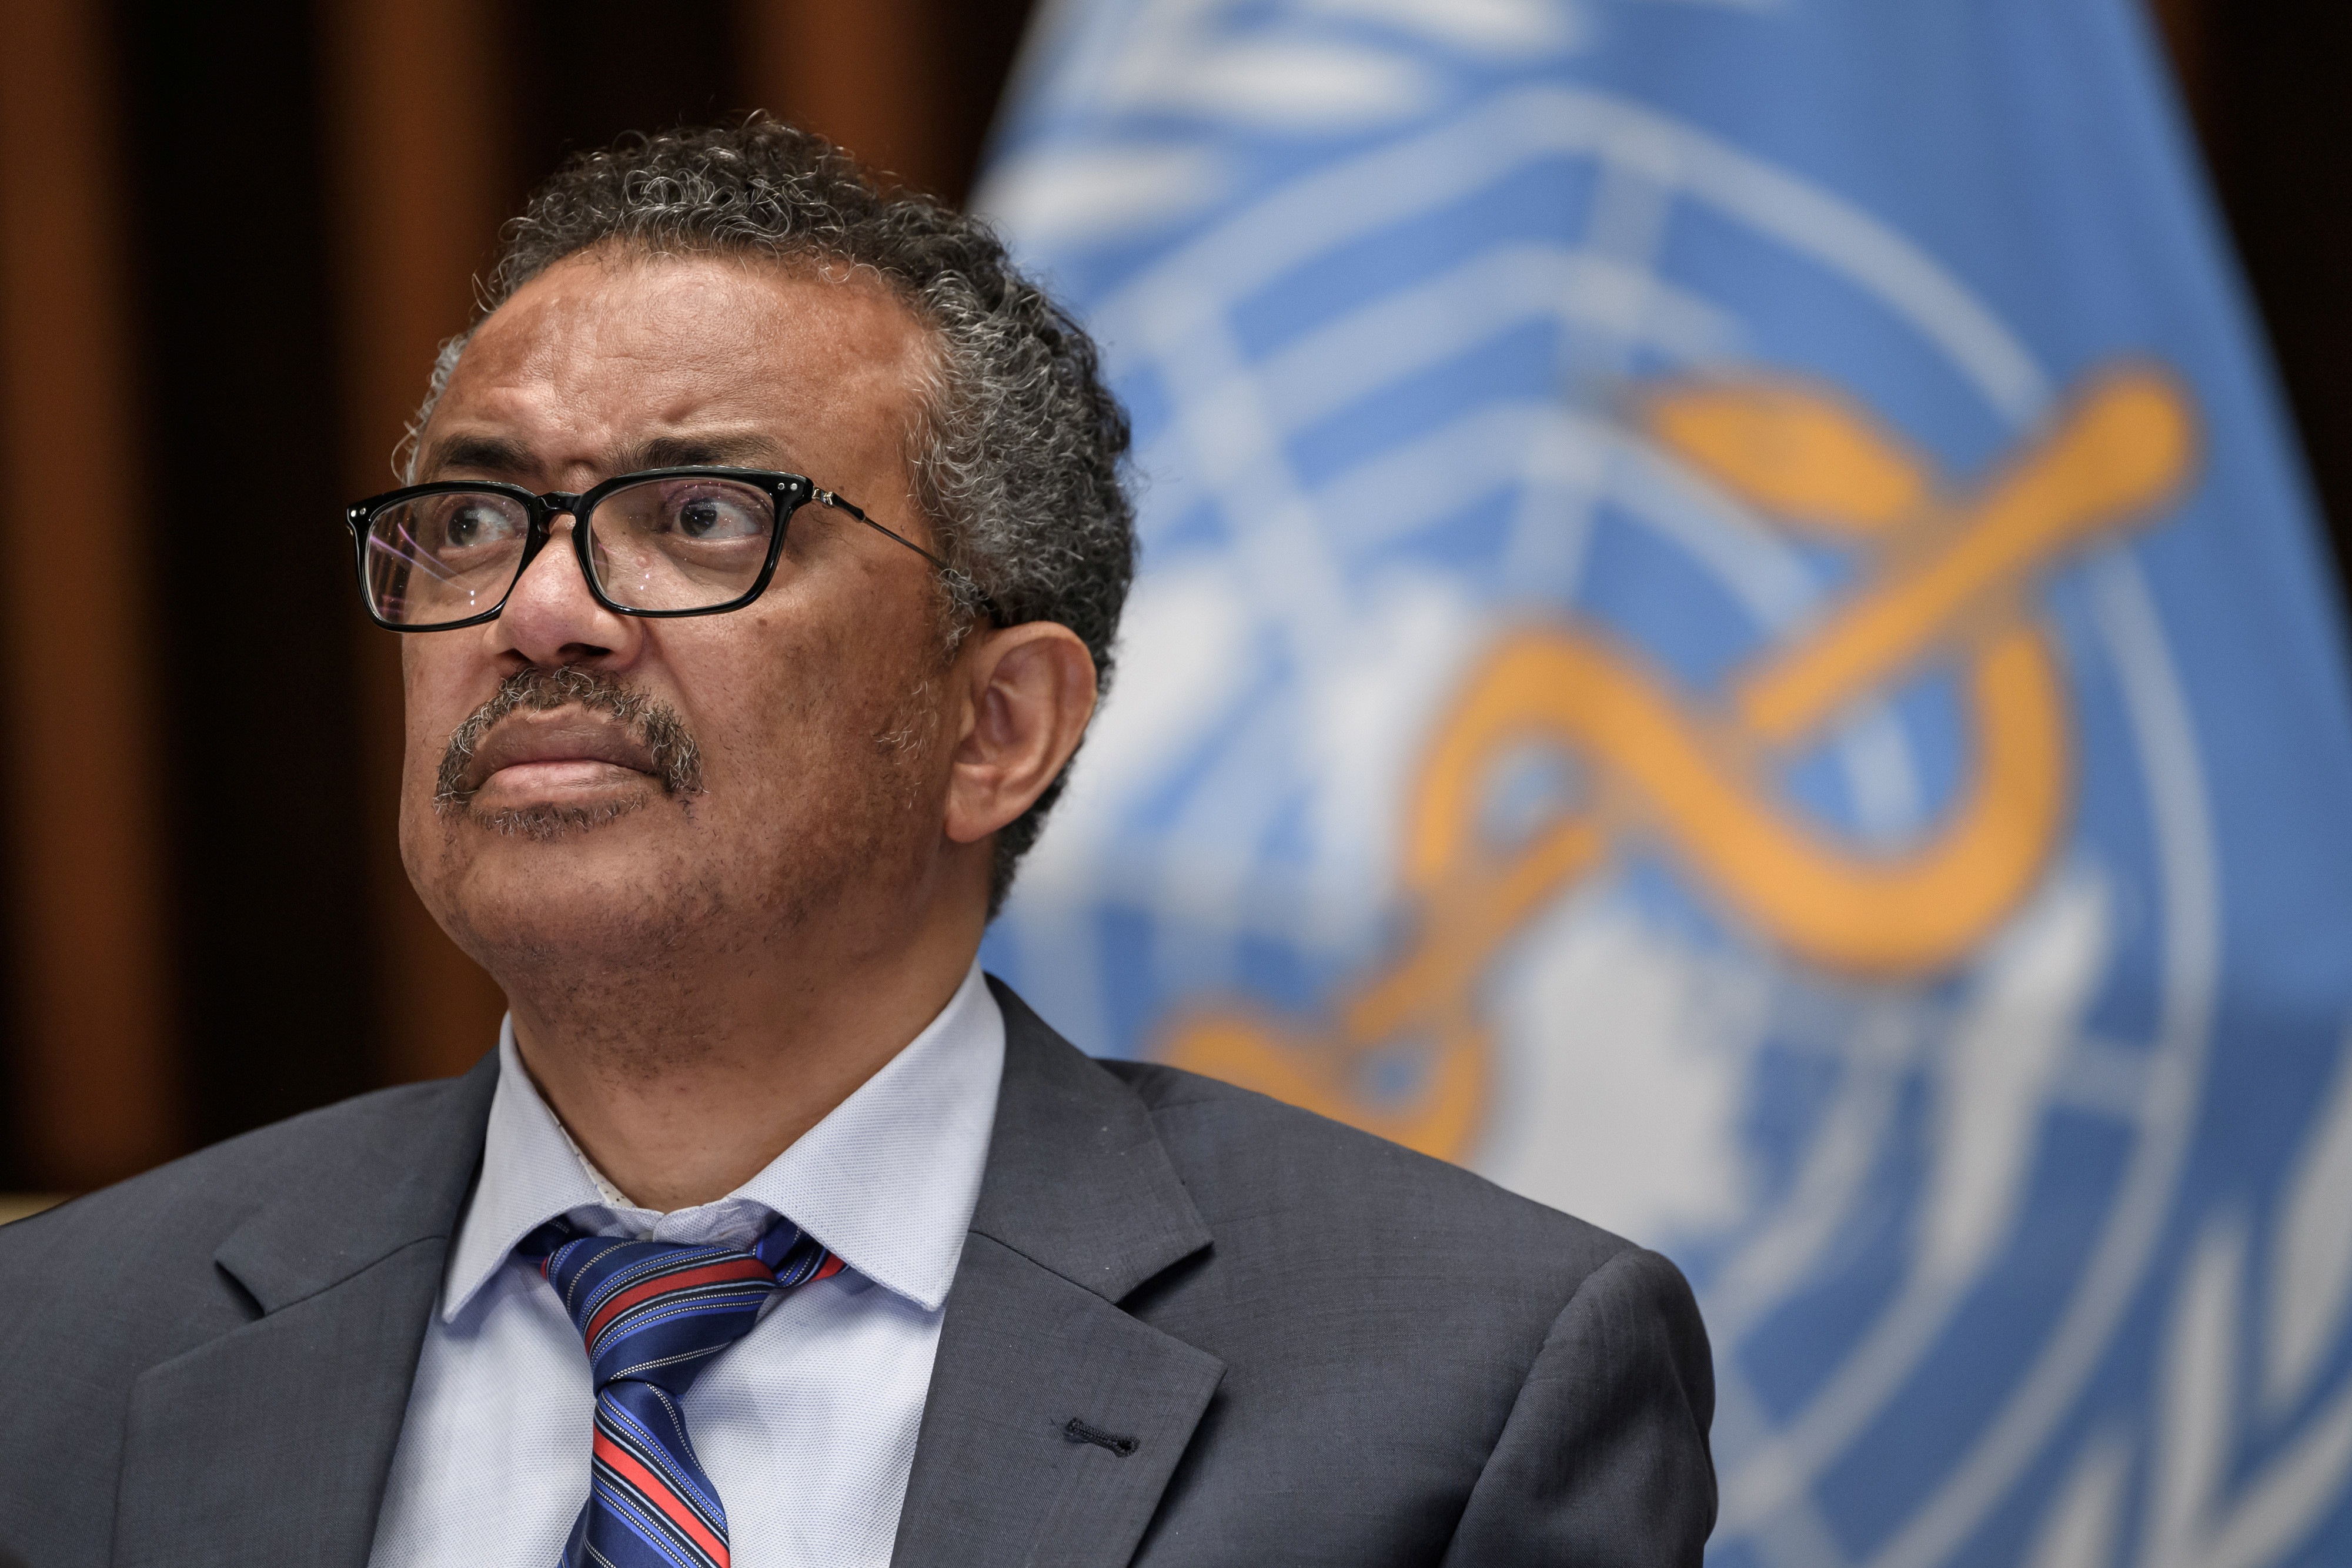 World Health Organization (WHO) Director-General Tedros Adhanom Ghebreyesus attends a news conference organized by Geneva Association of United Nations Correspondents (ACANU) amid the COVID-19 outbreak, caused by the novel coronavirus, at the WHO headquarters in Geneva Switzerland July 3, 2020. Fabrice Coffrini/Pool via REUTERS - RC2SLH9R8O78